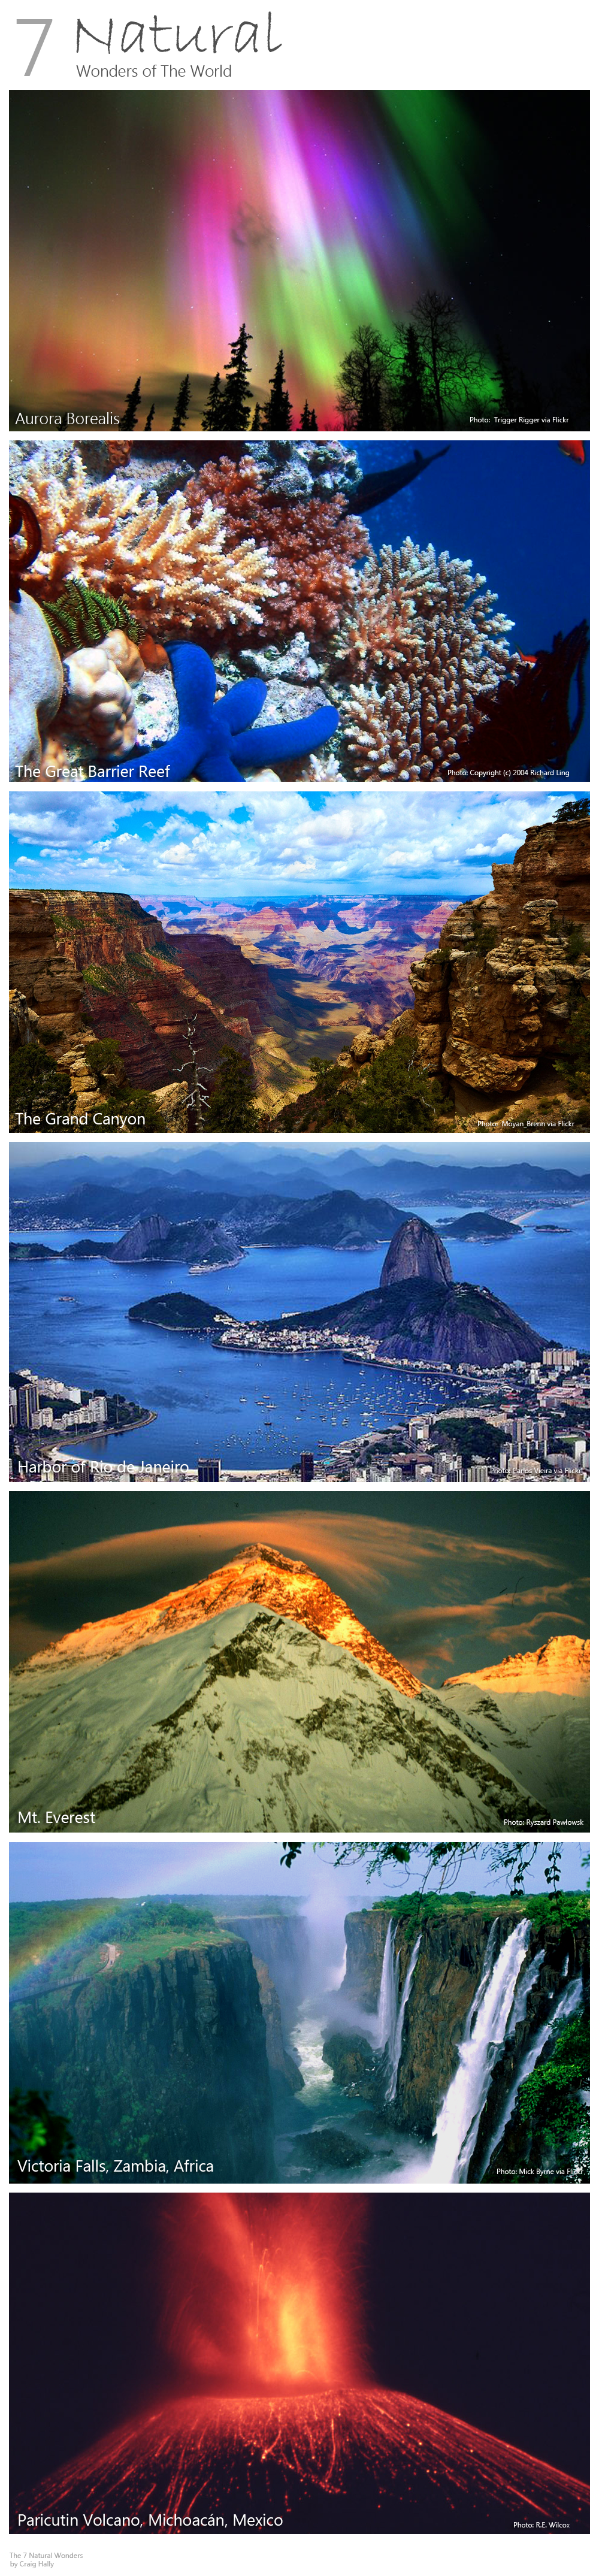 The 7 Natural Wonders of the World. I've only seen the ...